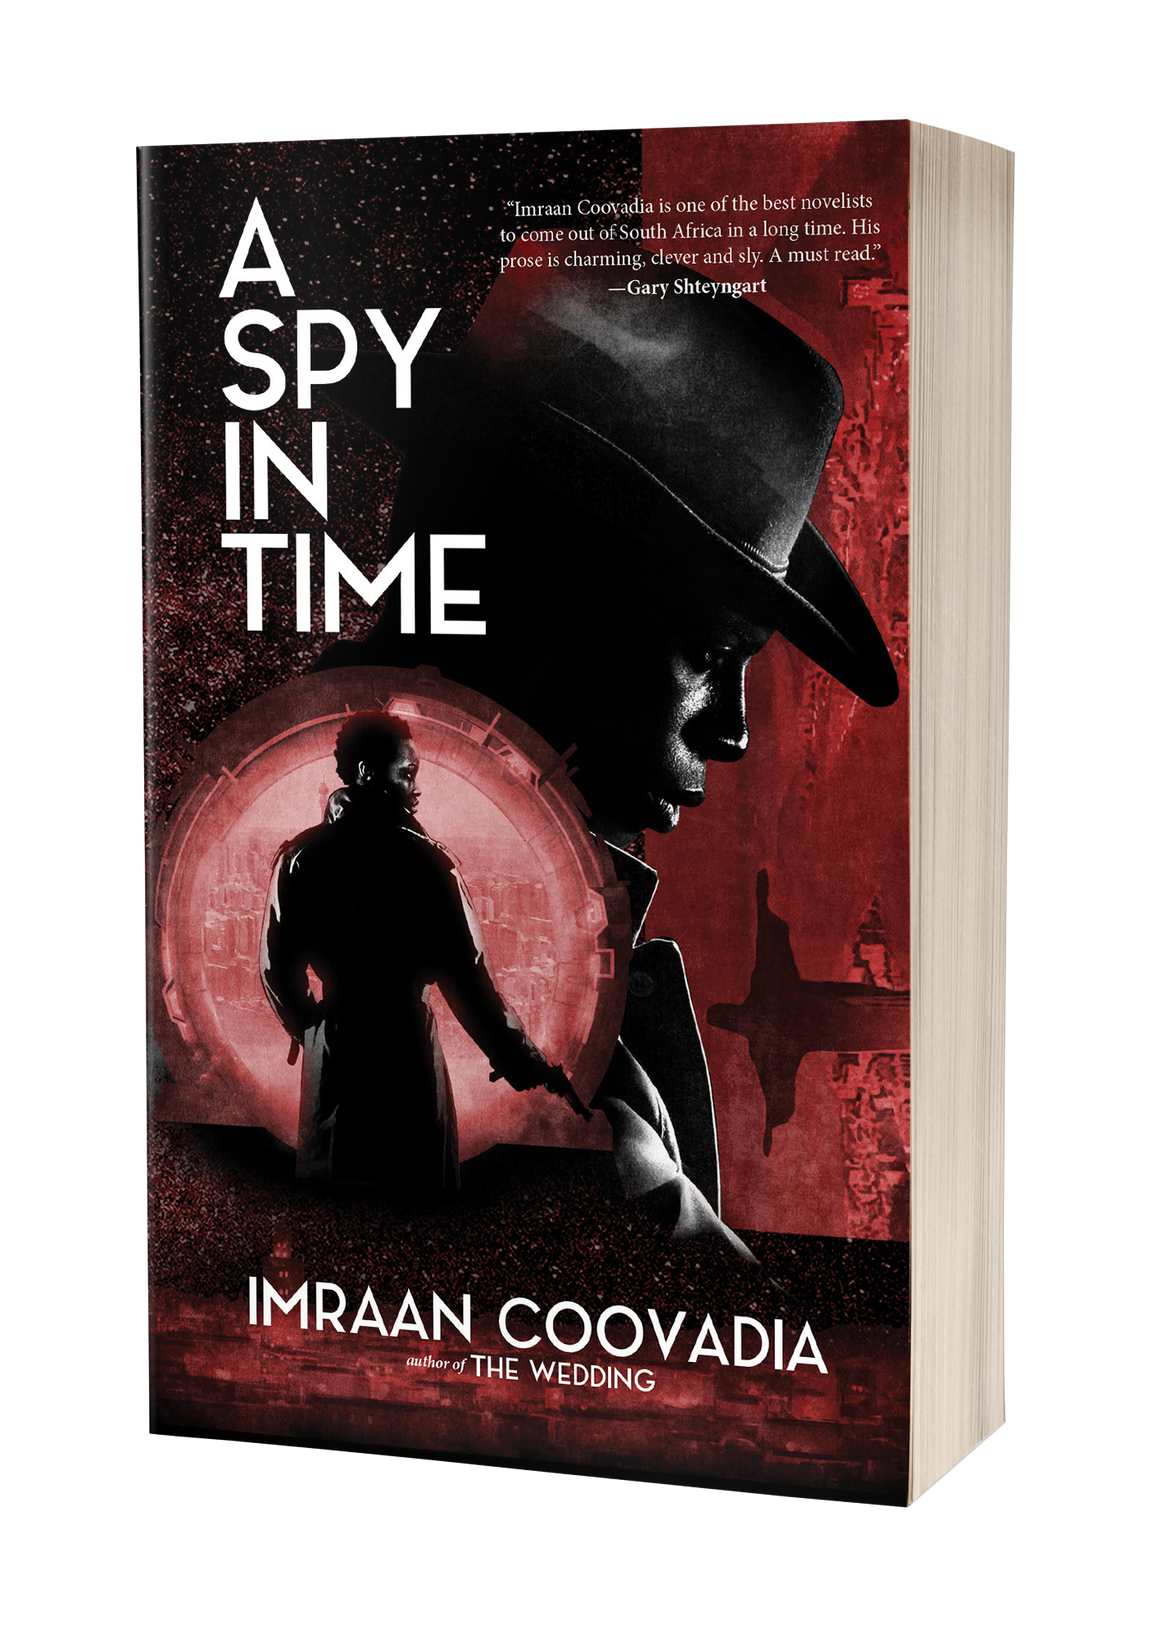 A Spy in Time